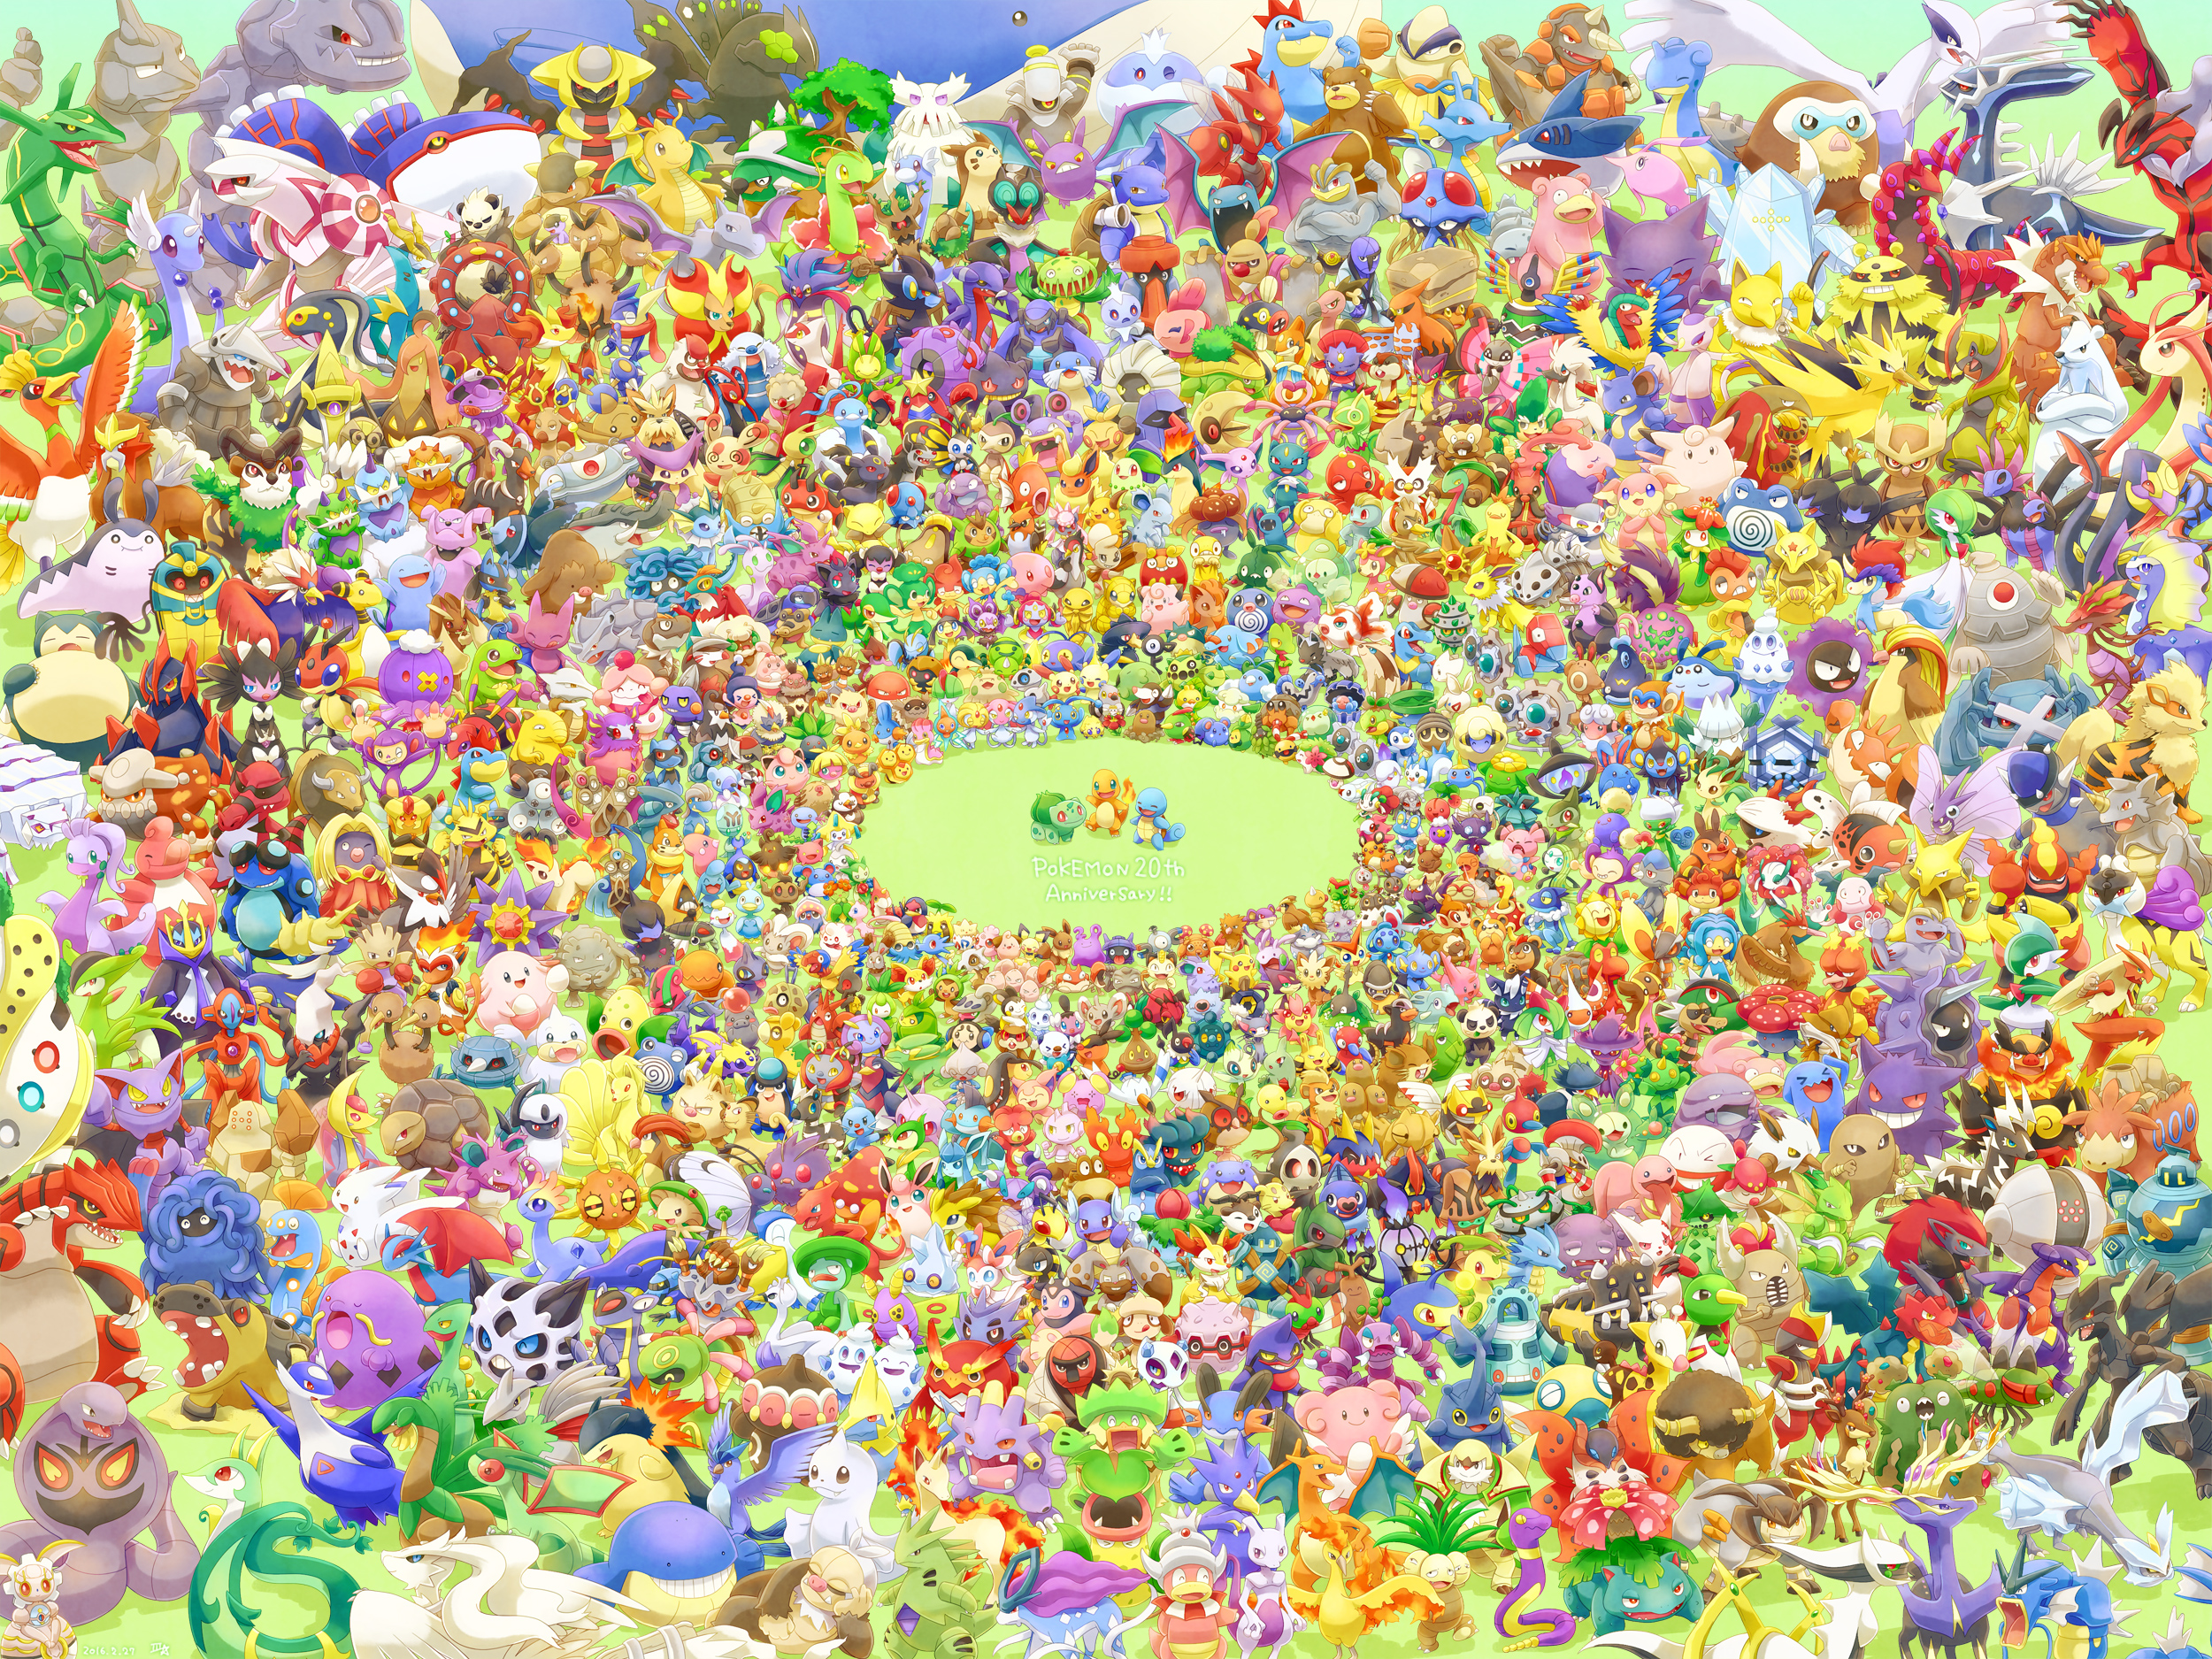 all pokemon as of april 2016 pok u00e9mon know your meme 20th anniversary logo ideas 20th anniversary logo free